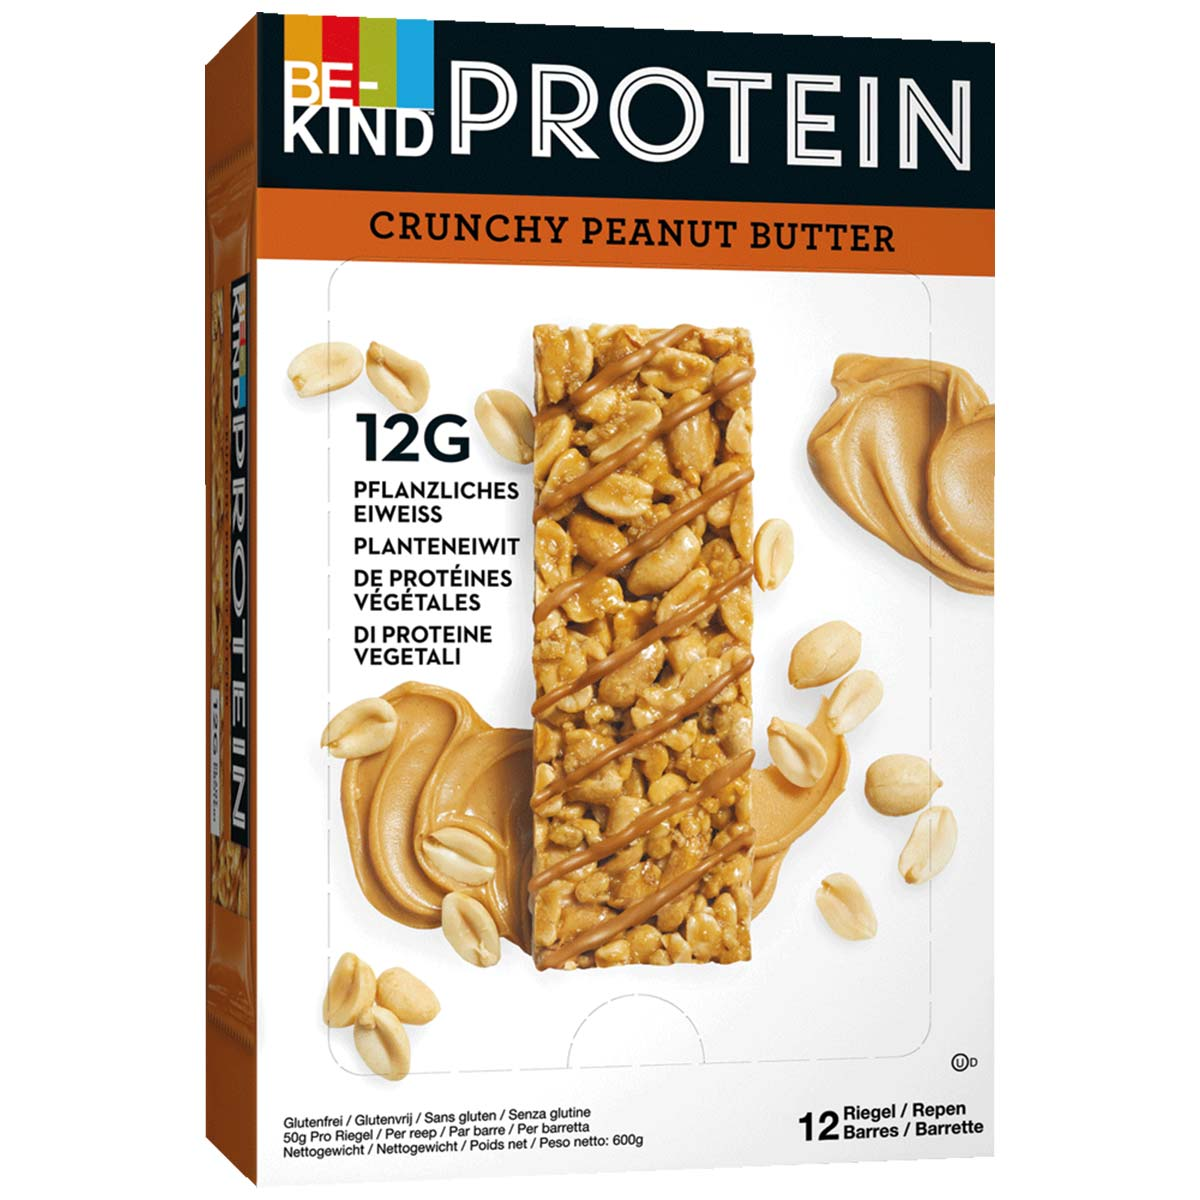 Be-Kind Protein Crunchy Peanut Butter